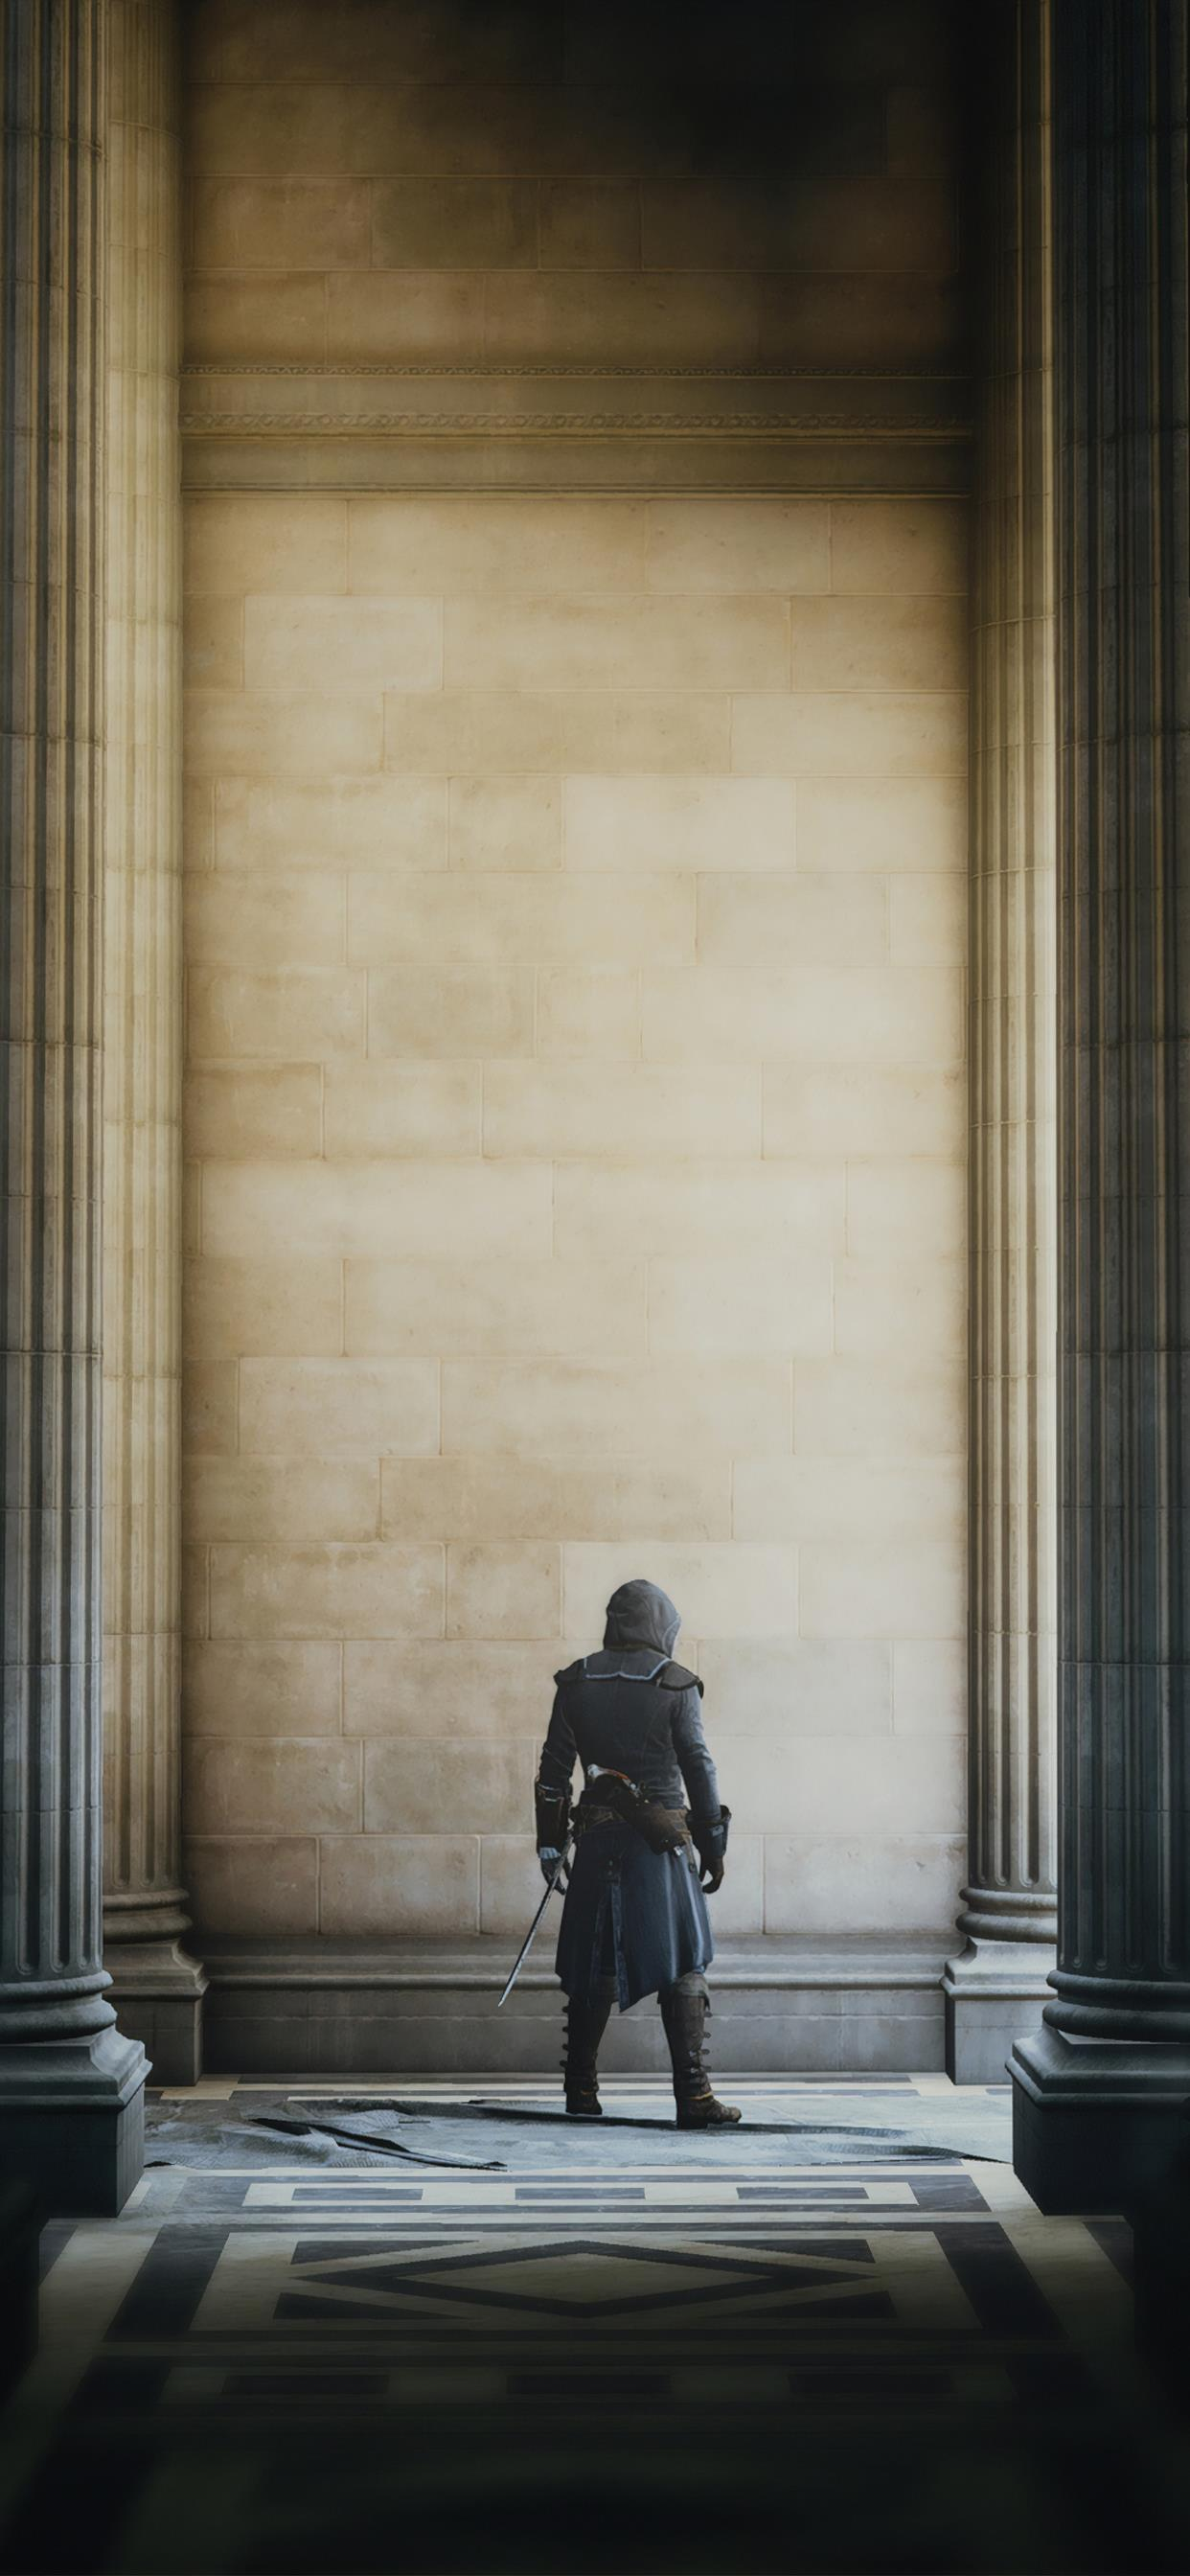 Assassins Creed Unity Video Game 2019 Iphone X Wallpapers Free Download